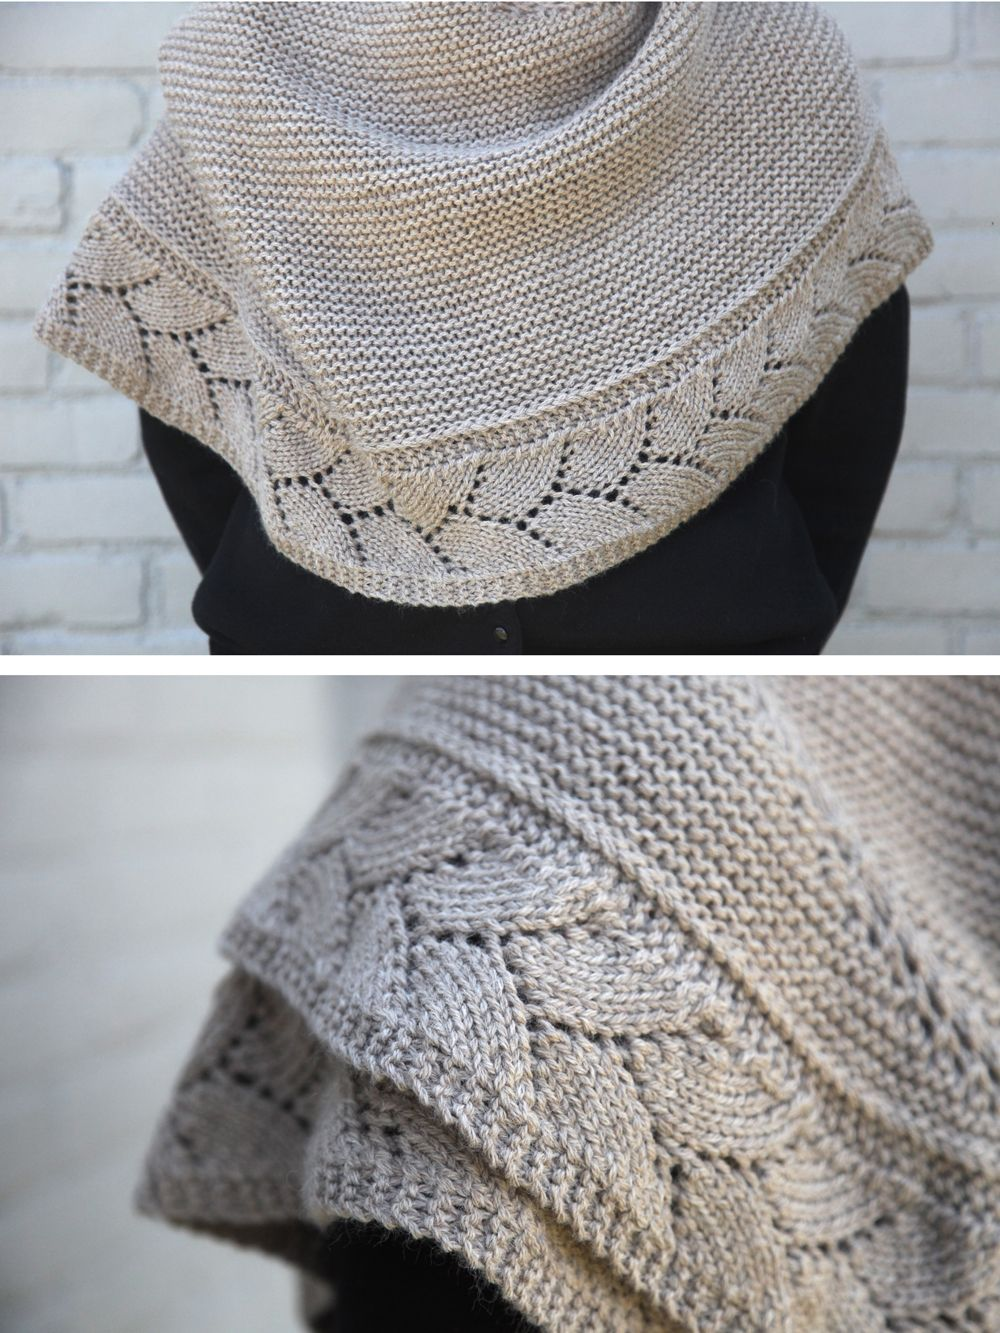 Pipers journey pattern by paula emons fuessle free pattern pipers journey pattern by paula emons fuessle knit shawl bankloansurffo Choice Image